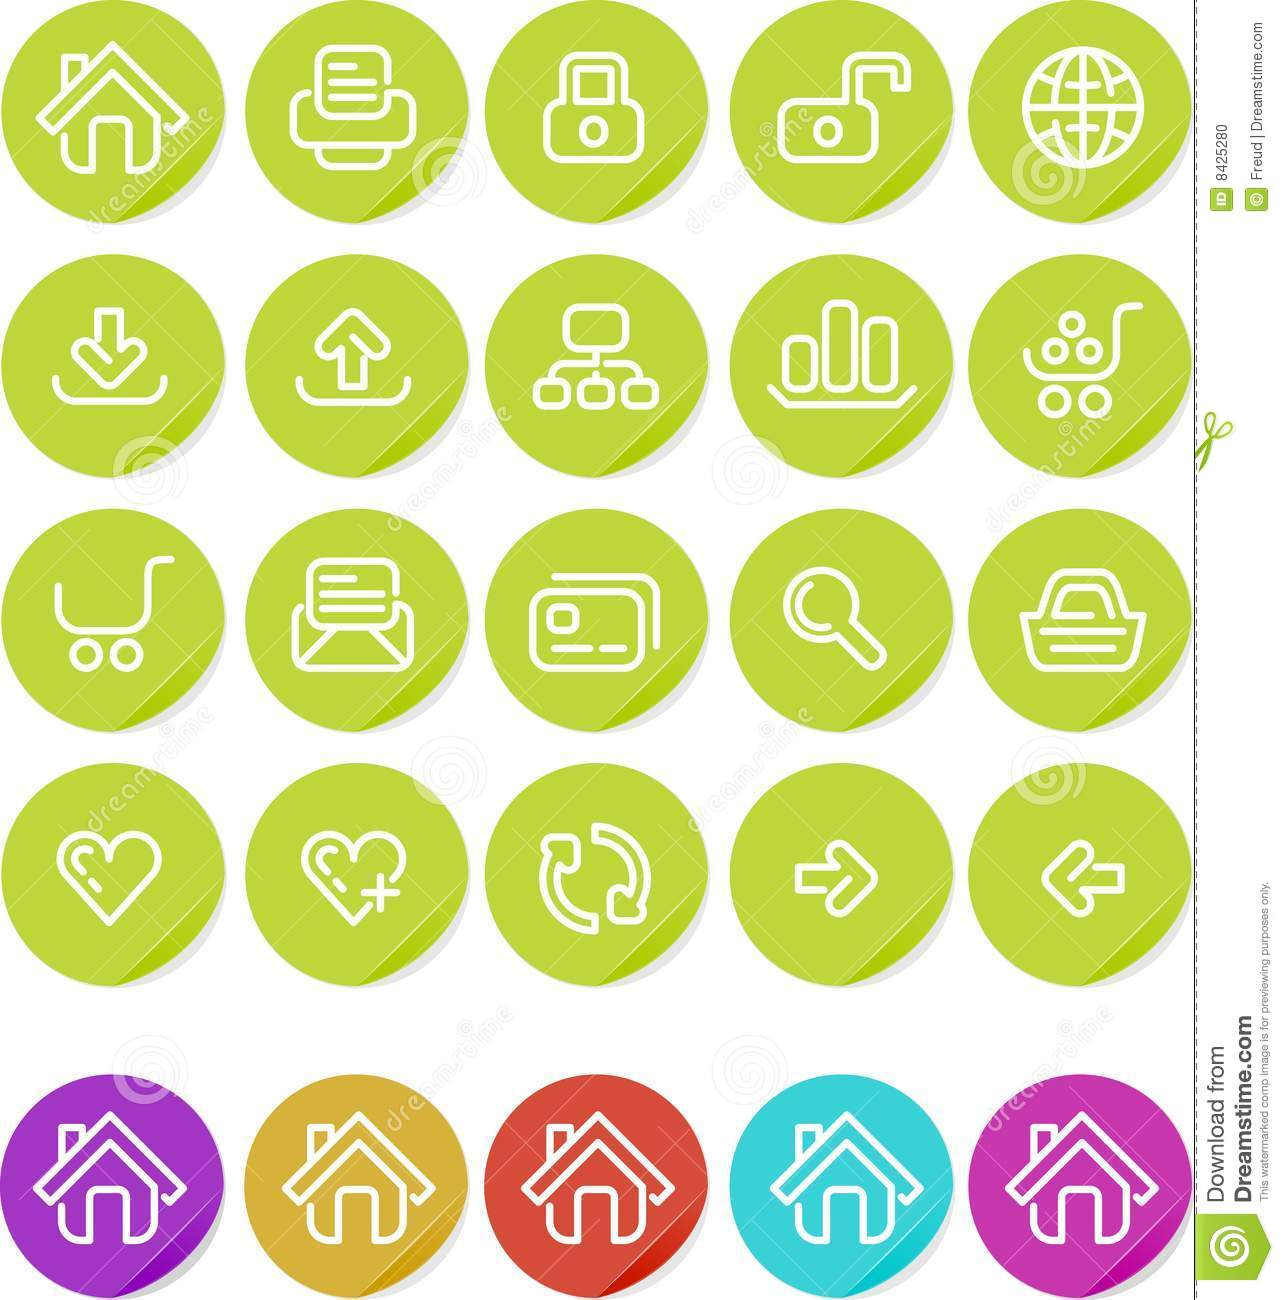 Plain stickers icon set: Website and Internet